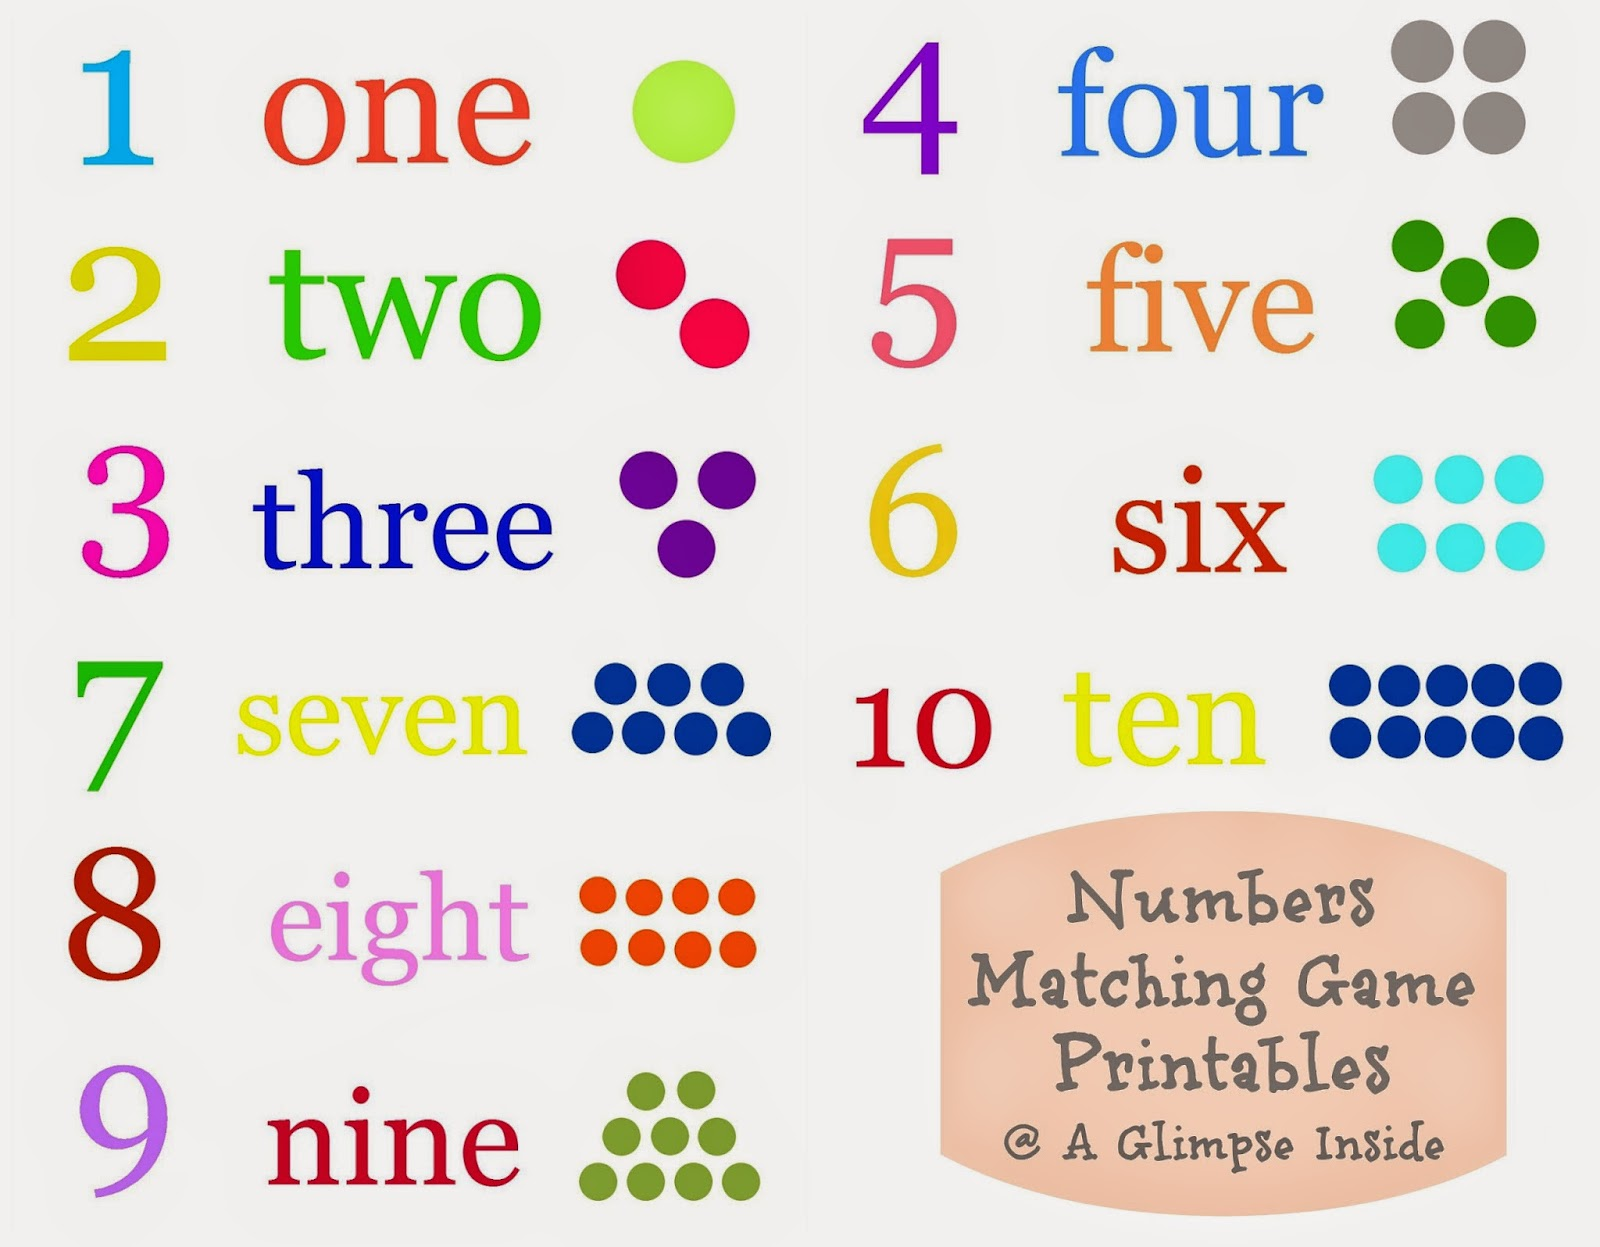 http://www.aglimpseinsideblog.com/2014/08/numbers-matching-game-printables.html